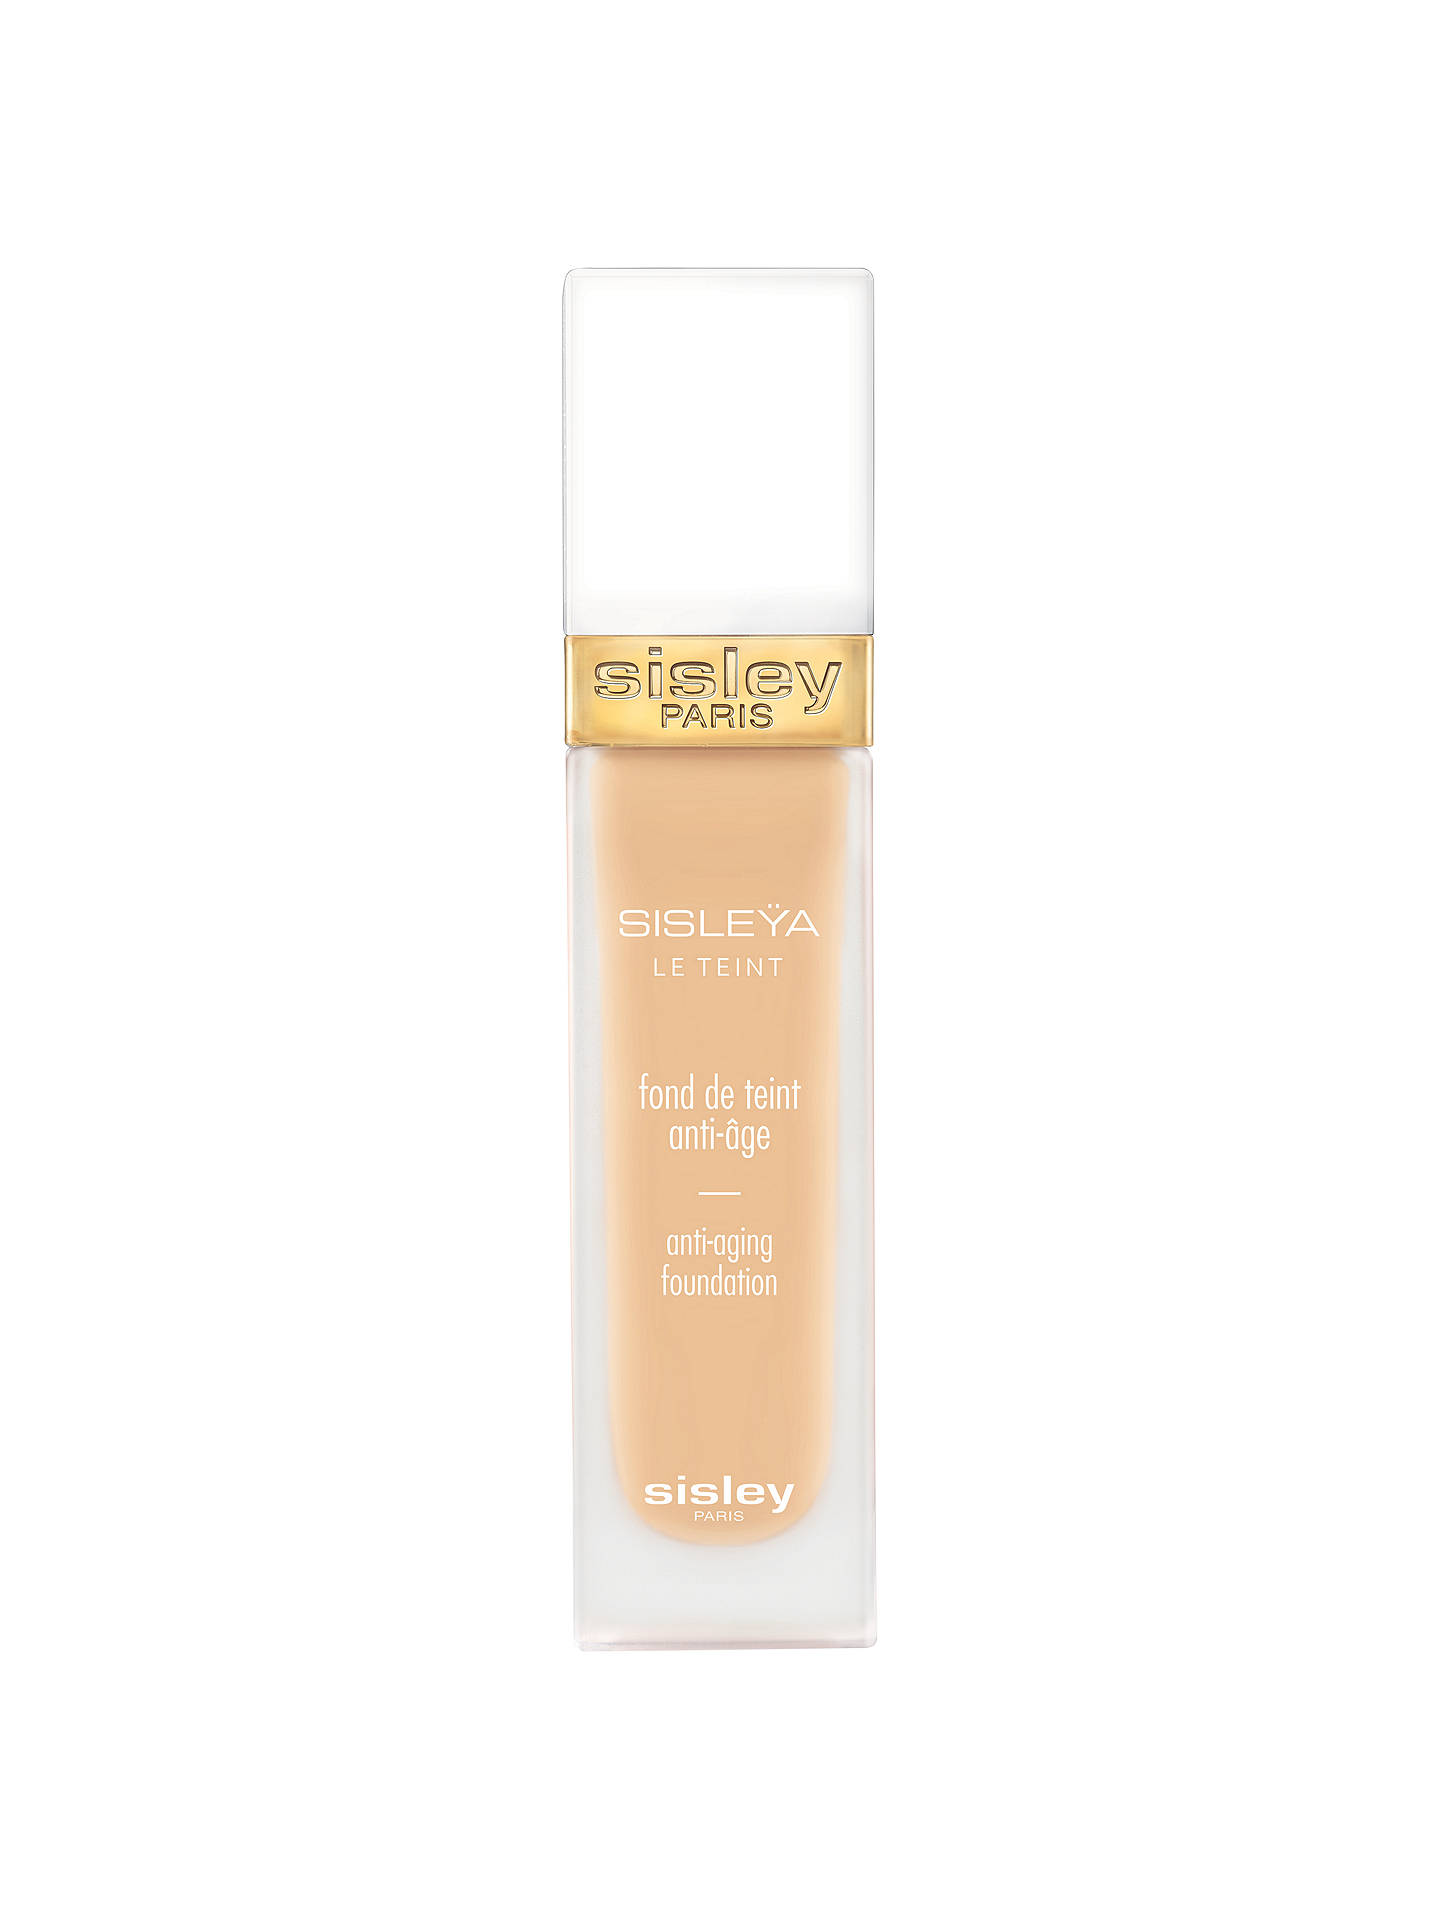 BuySisley Sisleÿa Le Teint Anti-Ageing Foundation, Porcelain Online at johnlewis.com